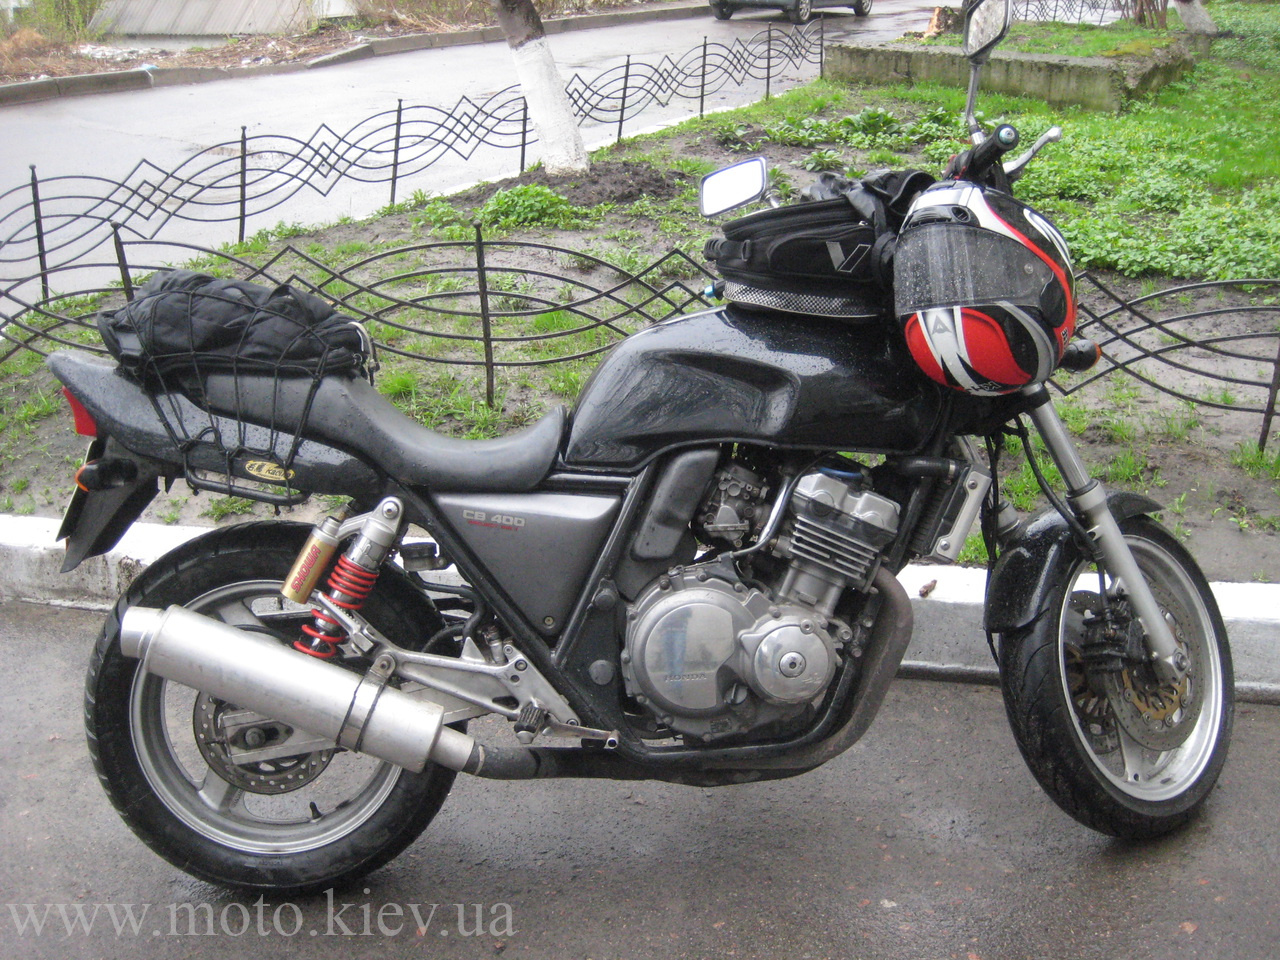 грузики для Honda CB 400 super four #8